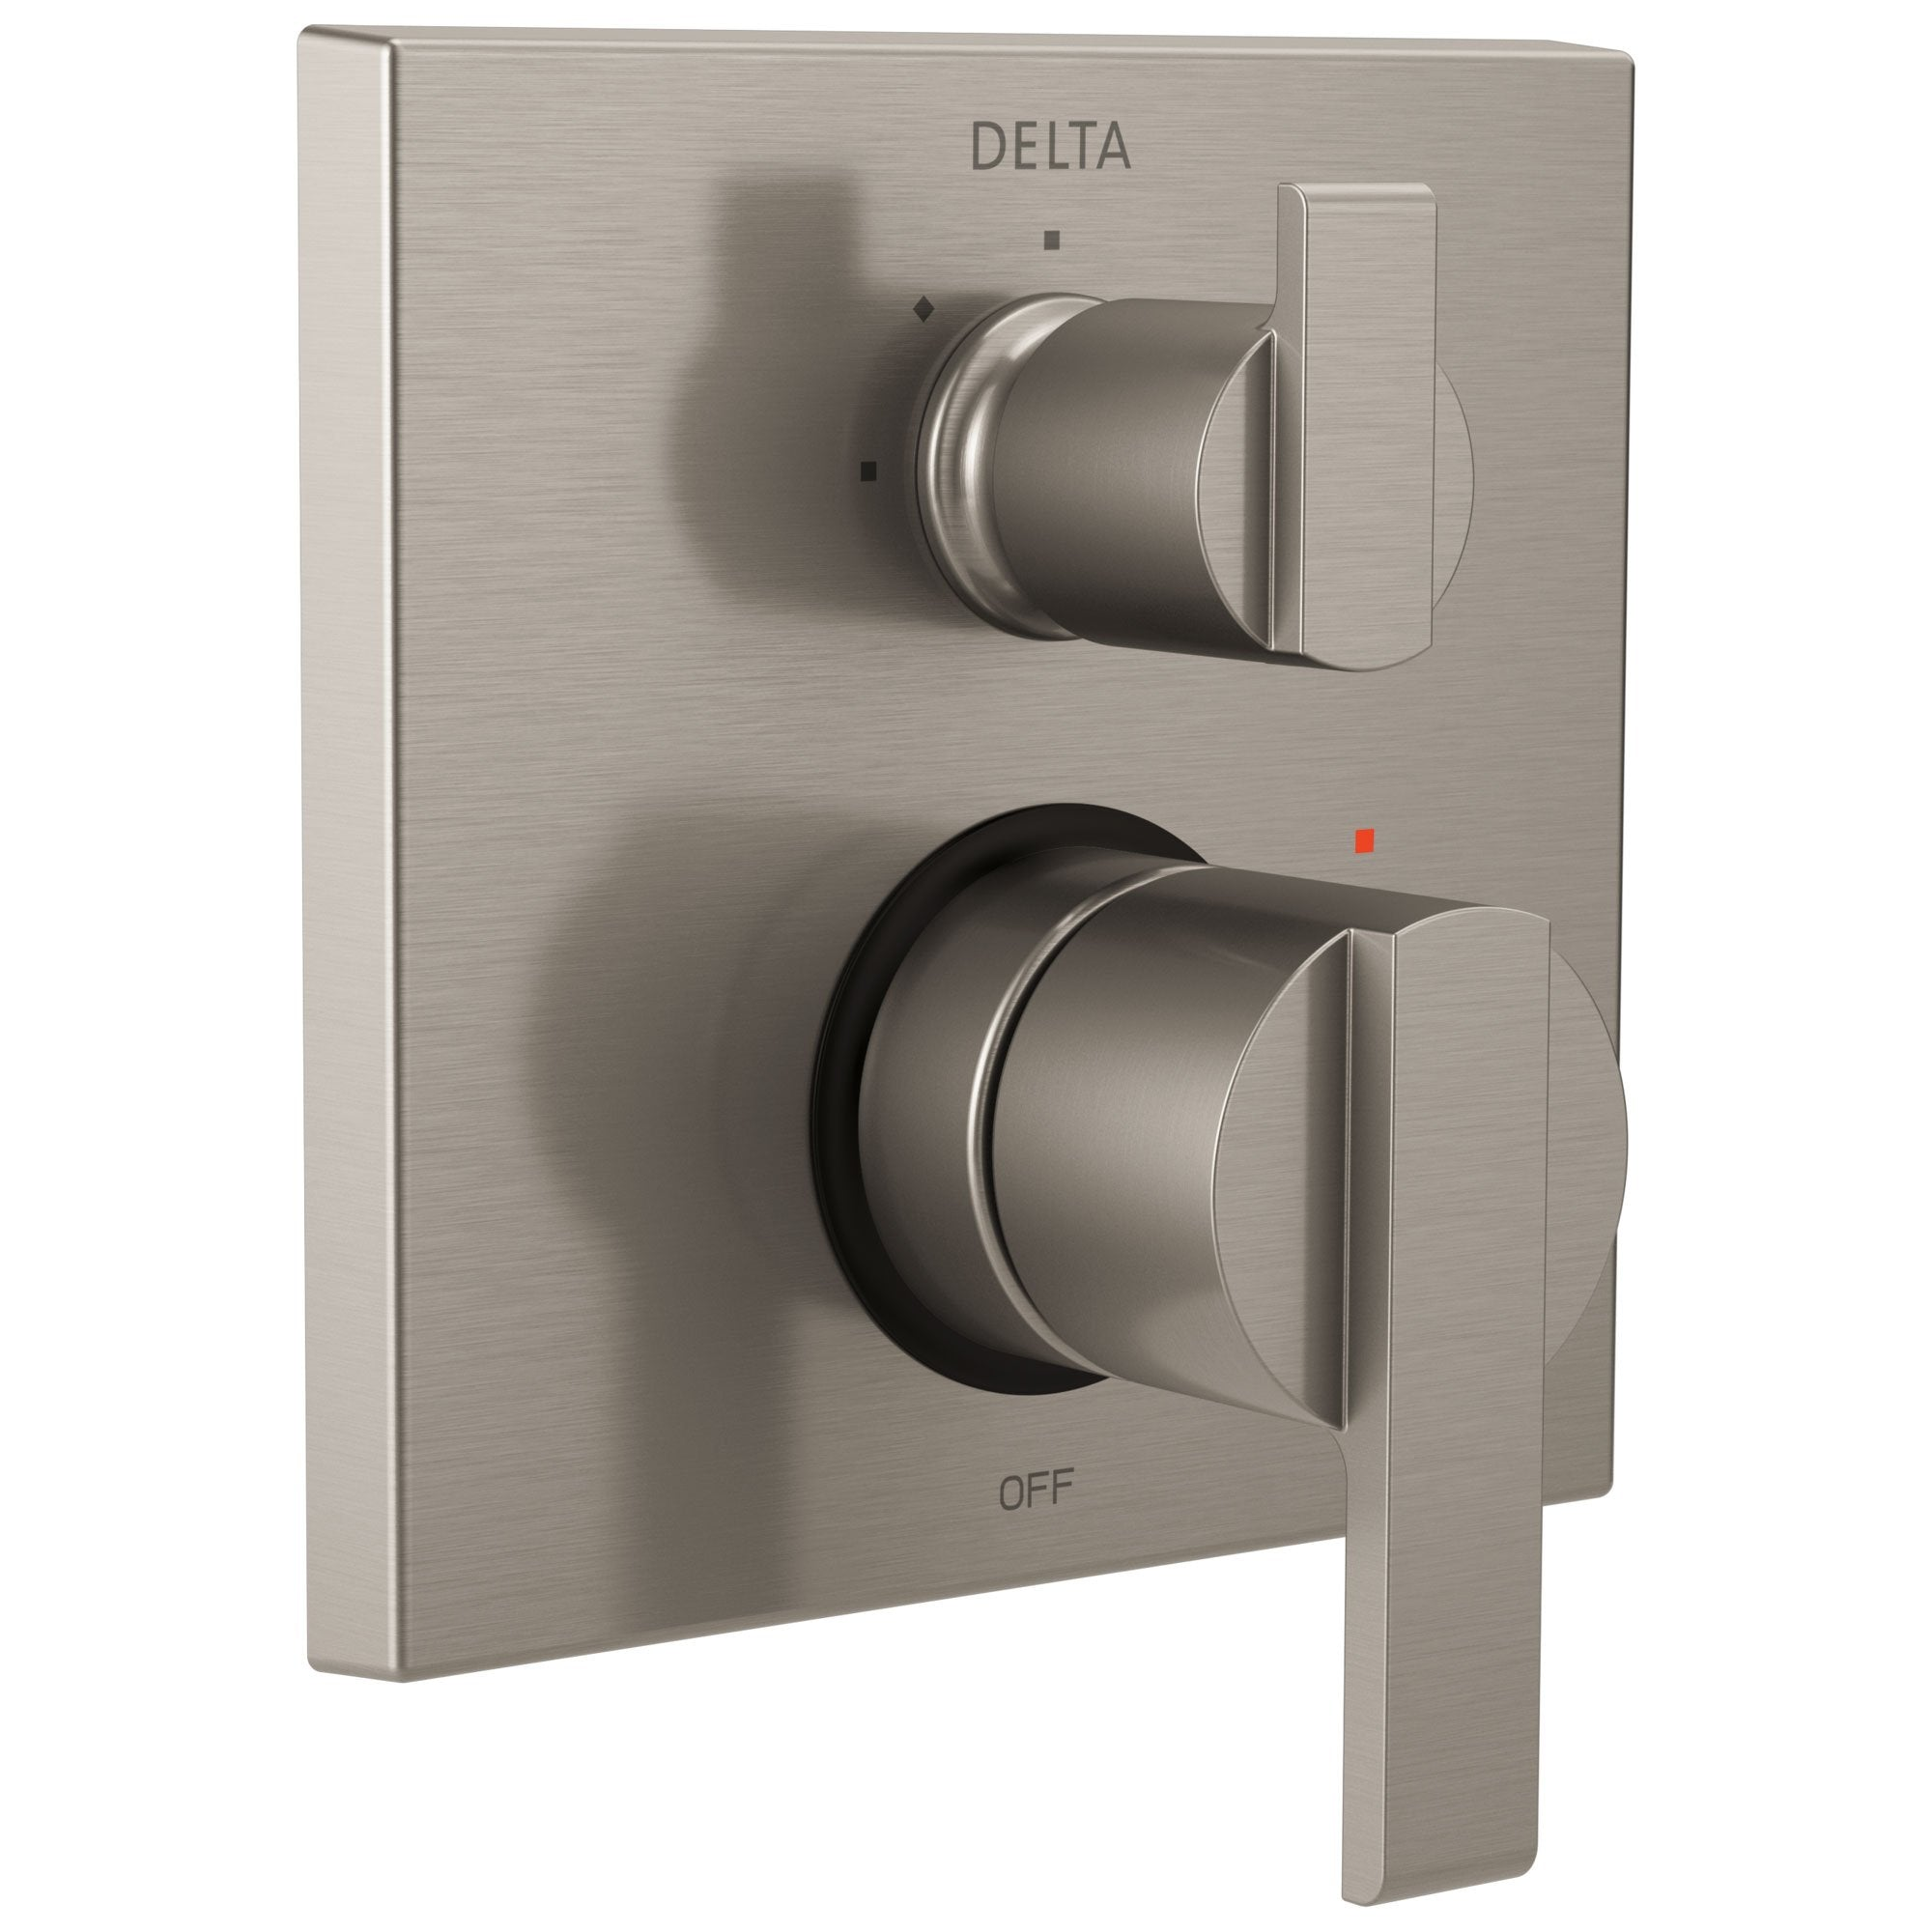 Delta Ara Stainless Steel Finish Shower Faucet Valve Trim Control Handle with 3-Setting Integrated Diverter Includes Trim Kit and Valve with Stops D2209V